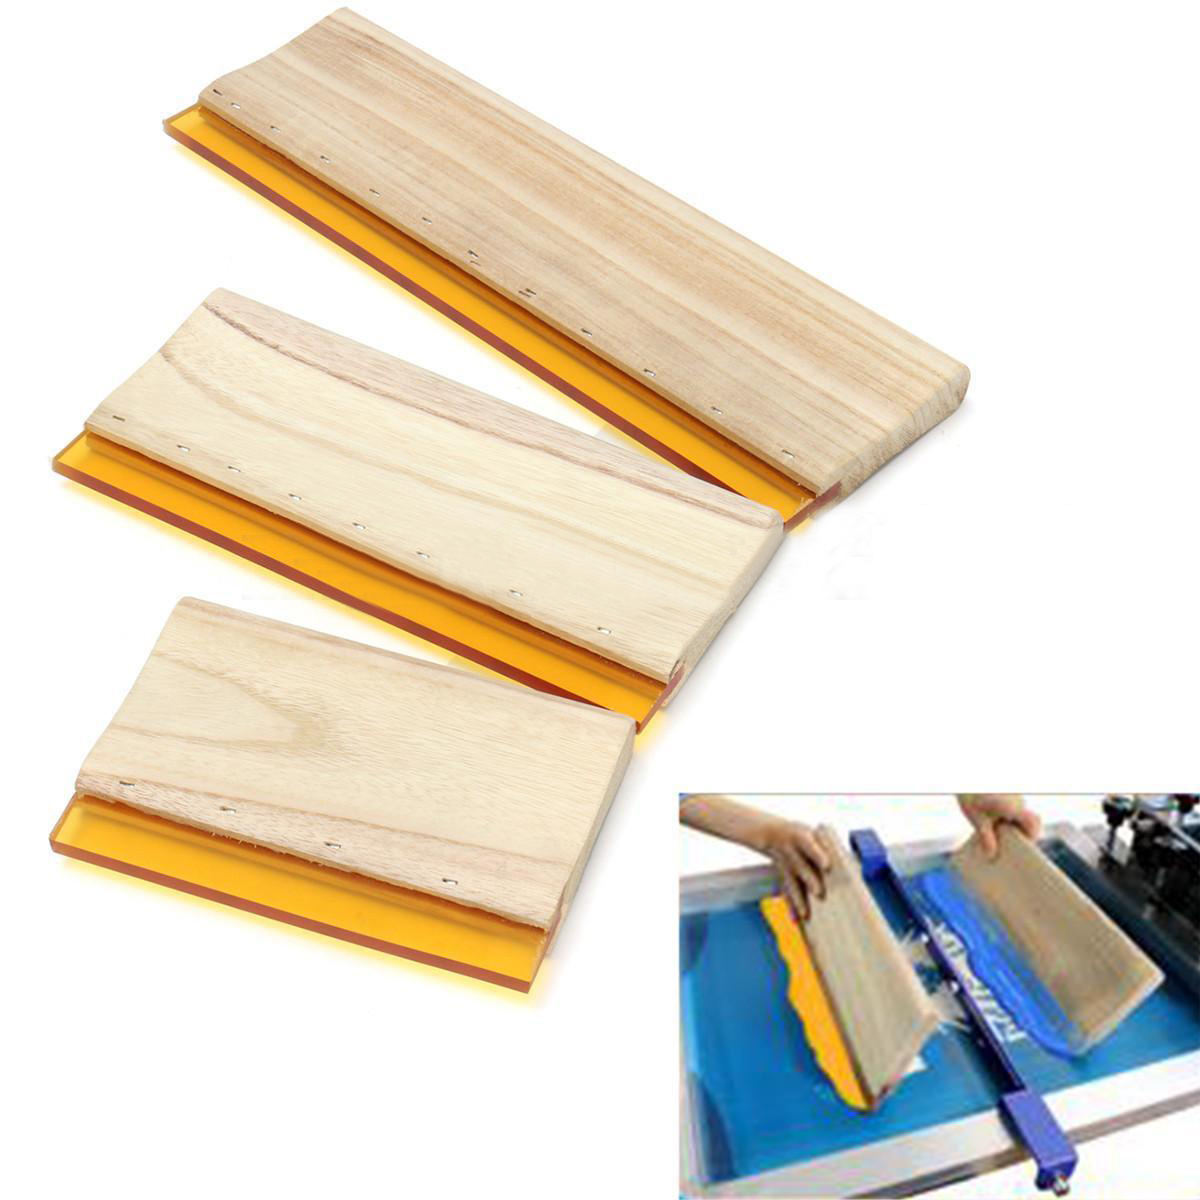 3pcs/lot Wearproof Silk Screen Printing Squeegees Blade Wooden Handle Ink Scraper Scratch Board Tools 16cm 24cm 33cm3pcs/lot Wearproof Silk Screen Printing Squeegees Blade Wooden Handle Ink Scraper Scratch Board Tools 16cm 24cm 33cm